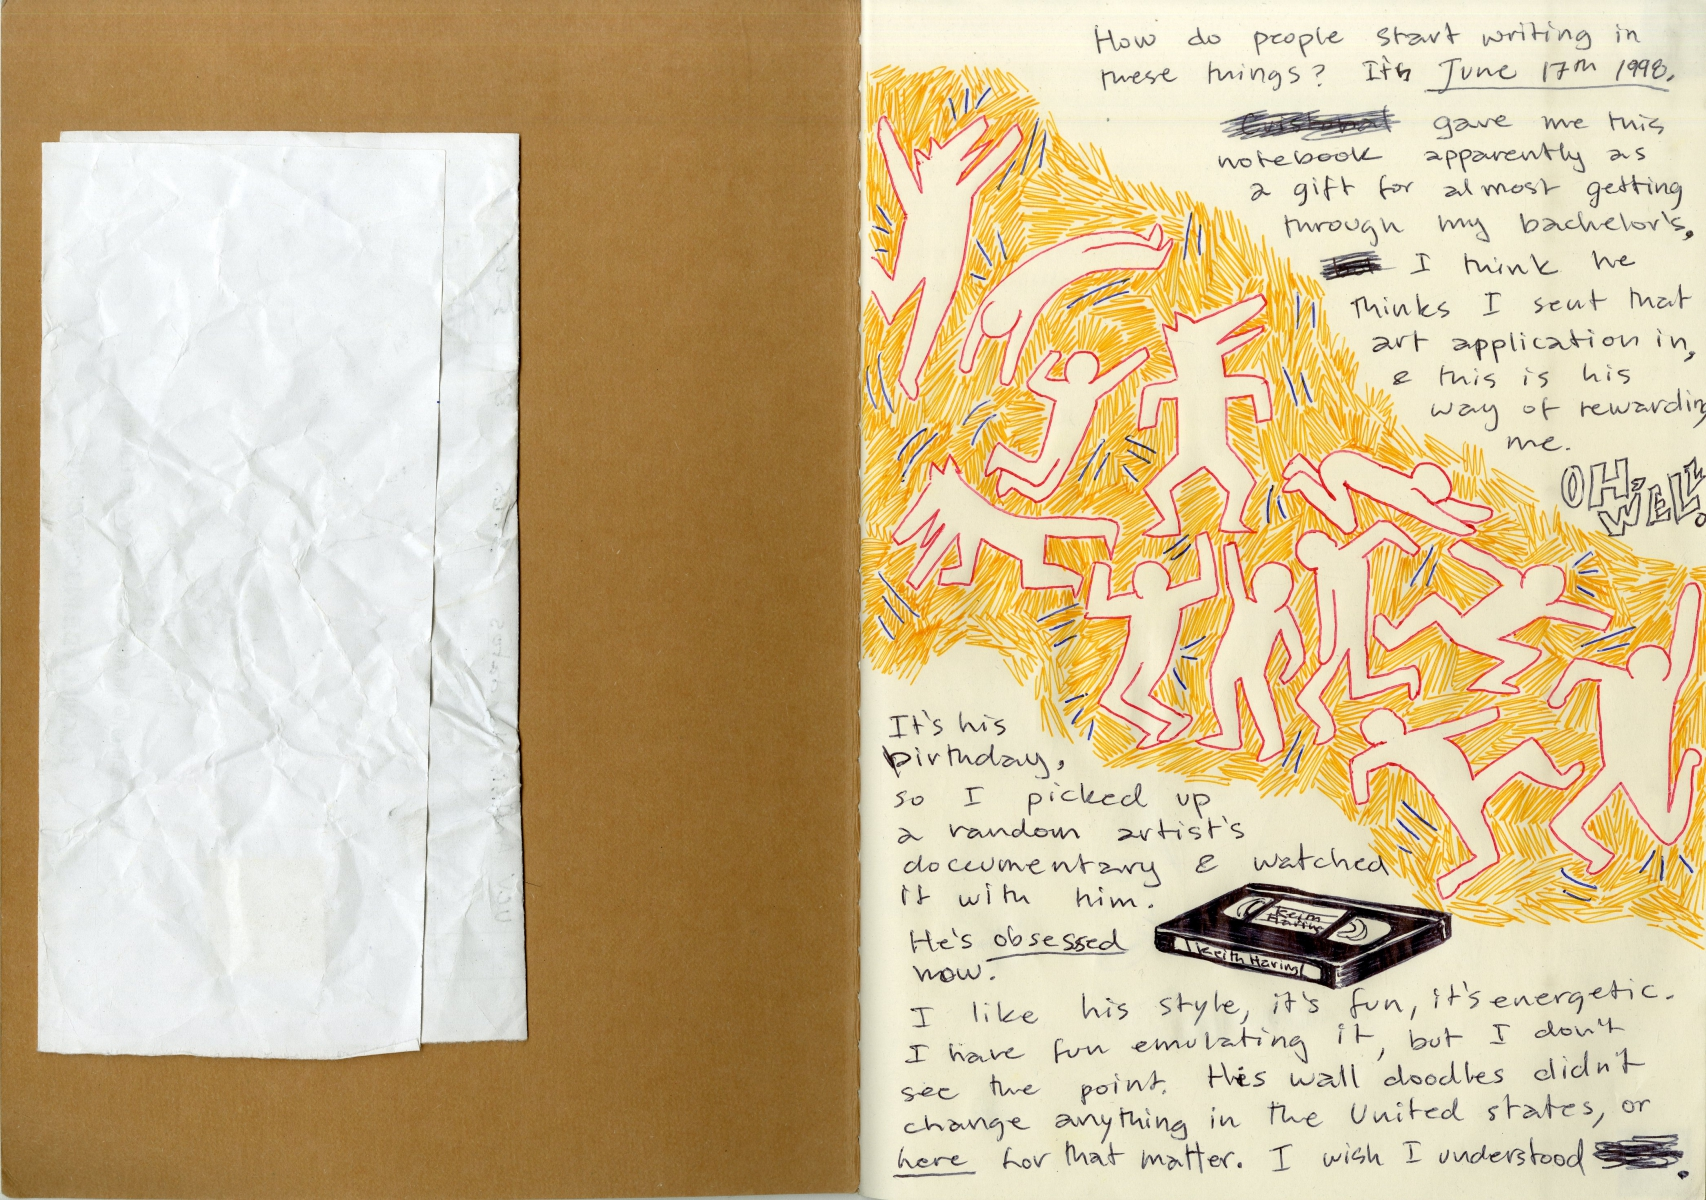 Ana Lozada Failed State, scan of an open notebook, the first page includes drawings of multiple figures in various poses against a yellow background and some text.